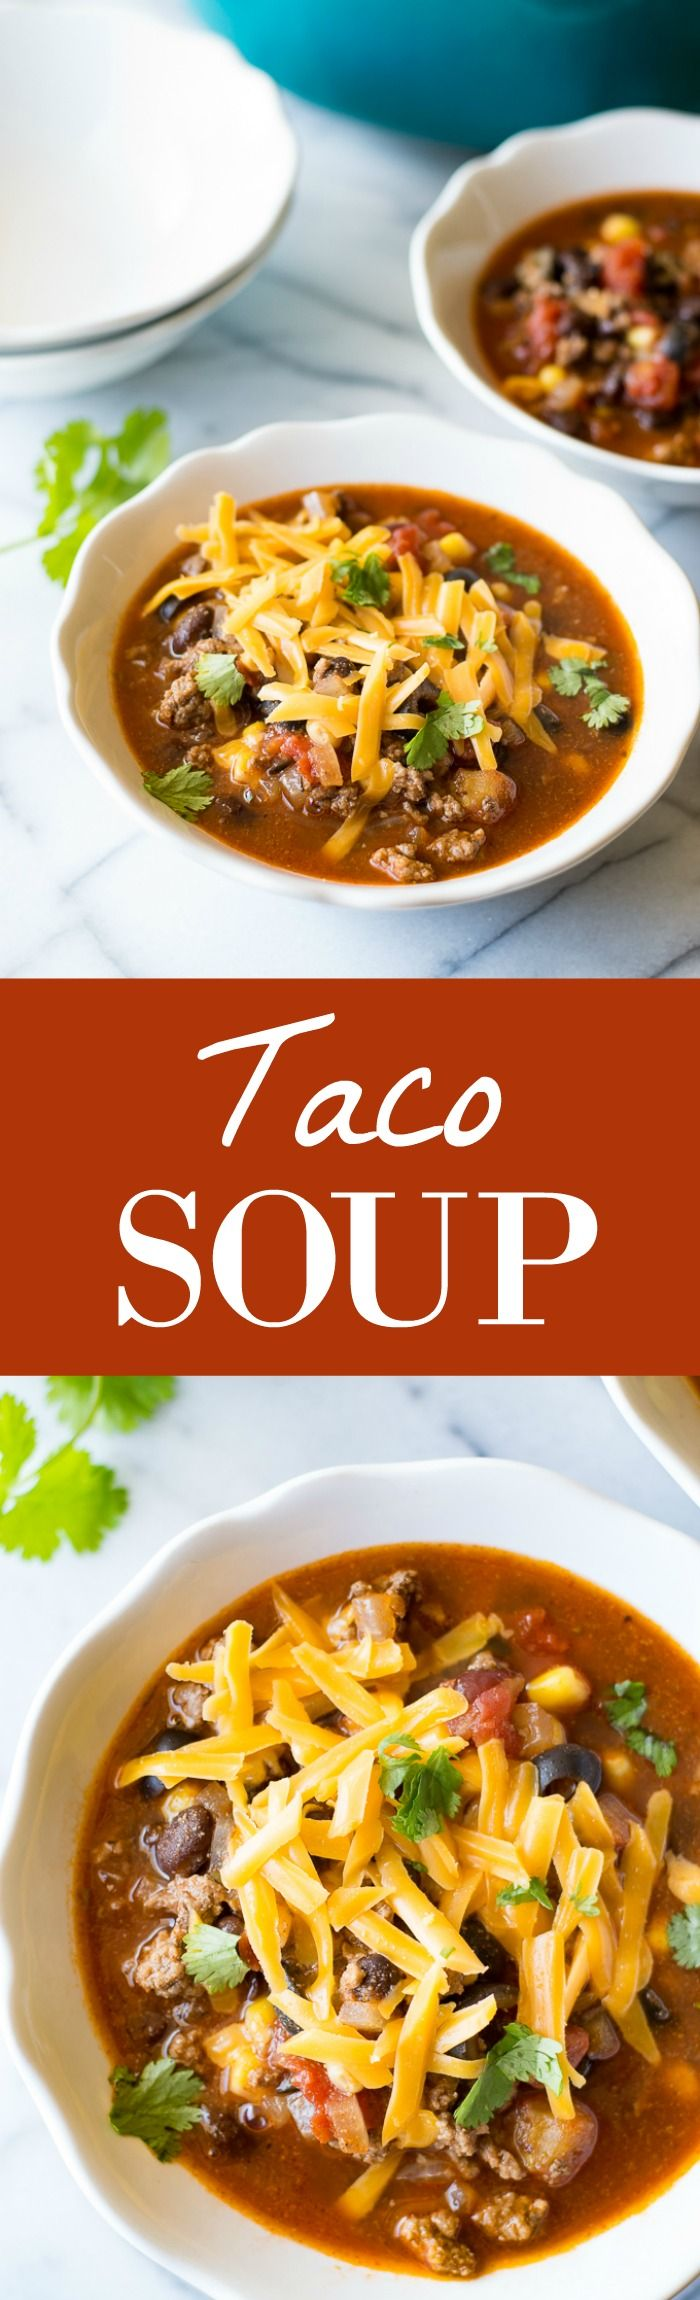 Get cozy with this delicious Taco Soup that you can make in under 30 minutes! It's the perfect quick and easy dinner! Taco soup is a…